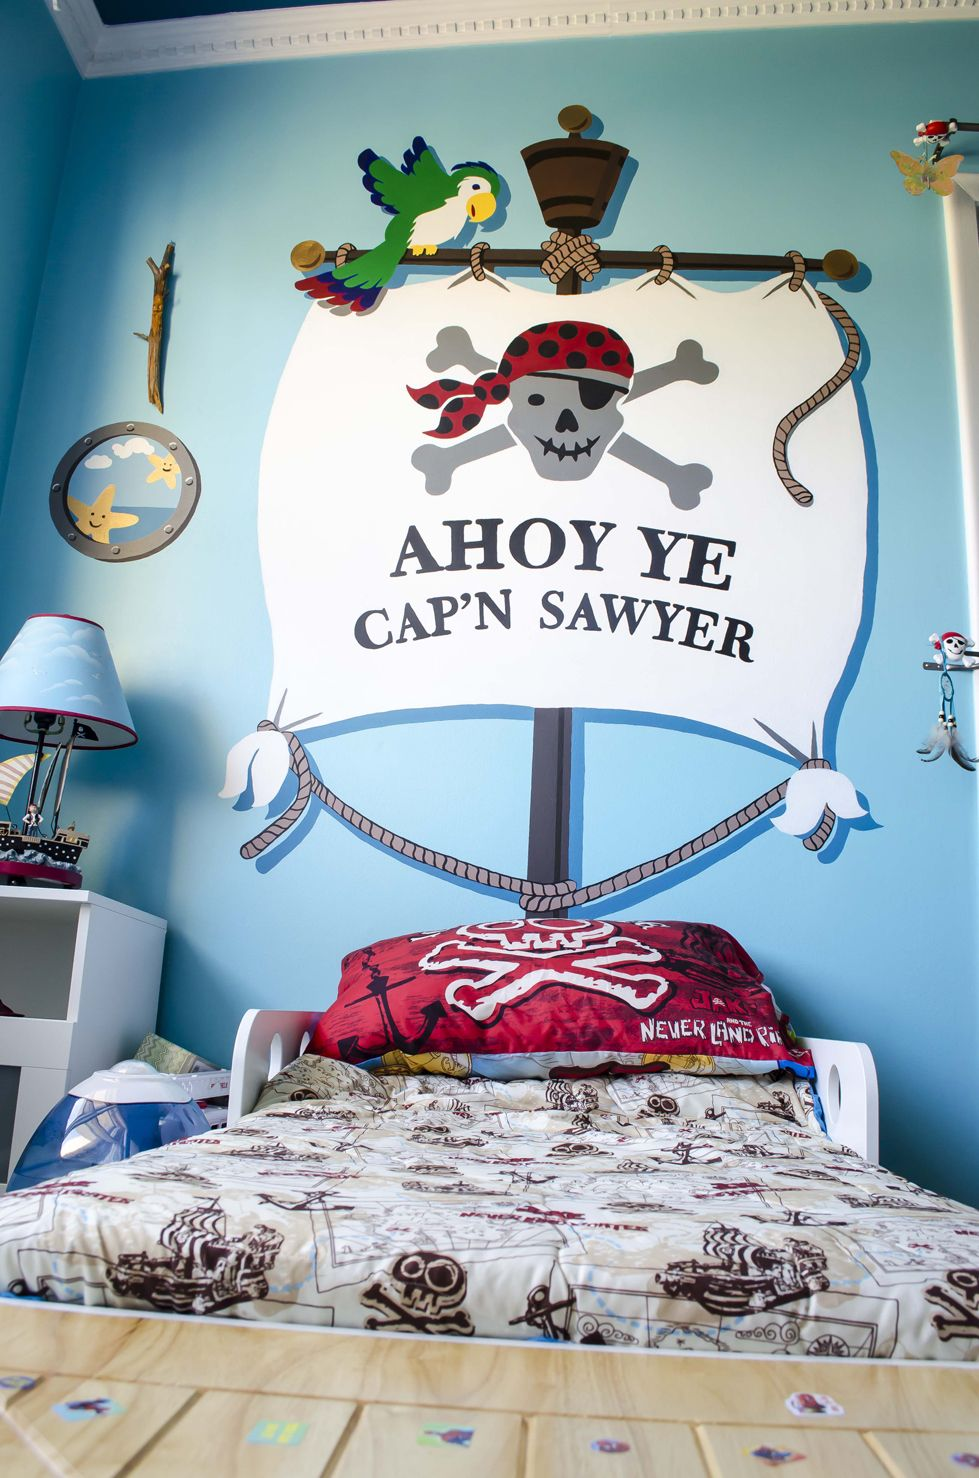 ahoy ye matey paint by number wall mural pirate ships wall paint by number wall mural